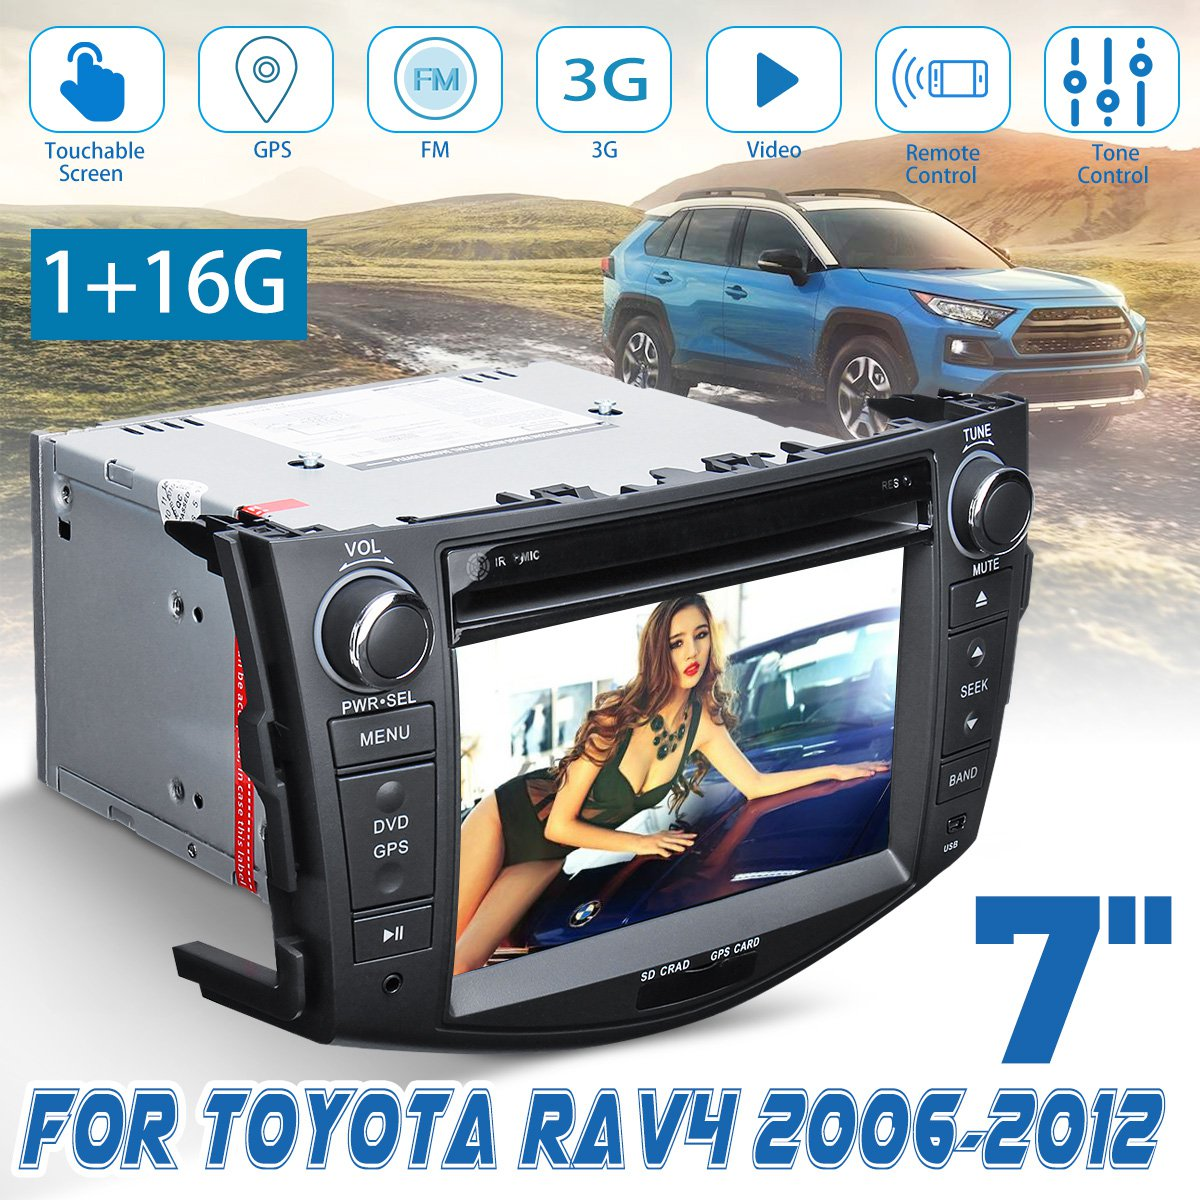 7 Inch 2 Din DVD Player 3G GPS NAV Stereo Bluetooth Radio Indash For Toyota RAV4 2006 2007 2008 2009 2010 2012